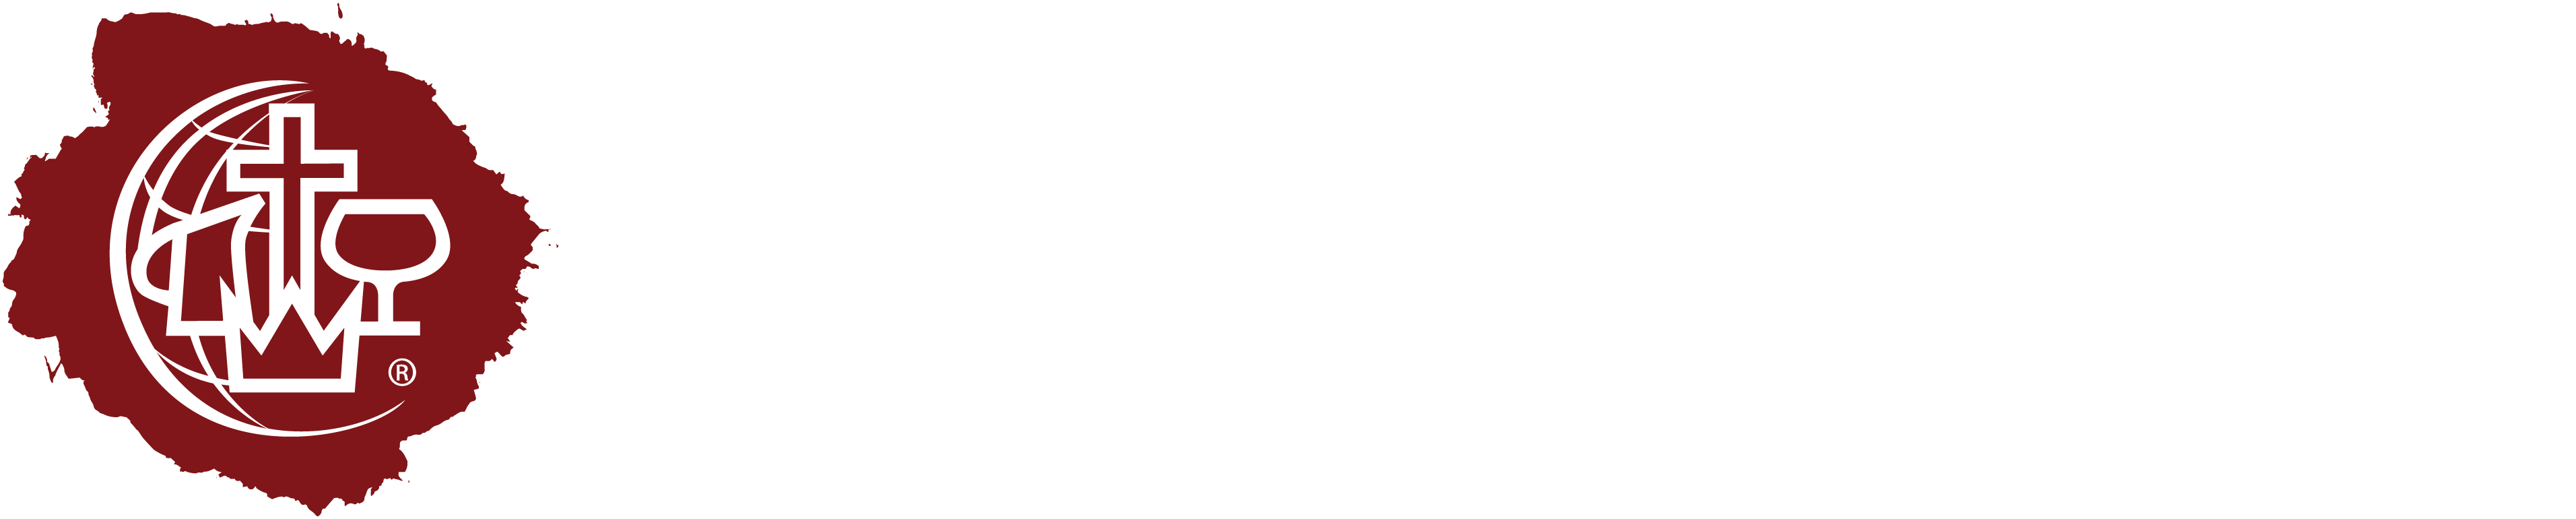 Japan Alliance Mission